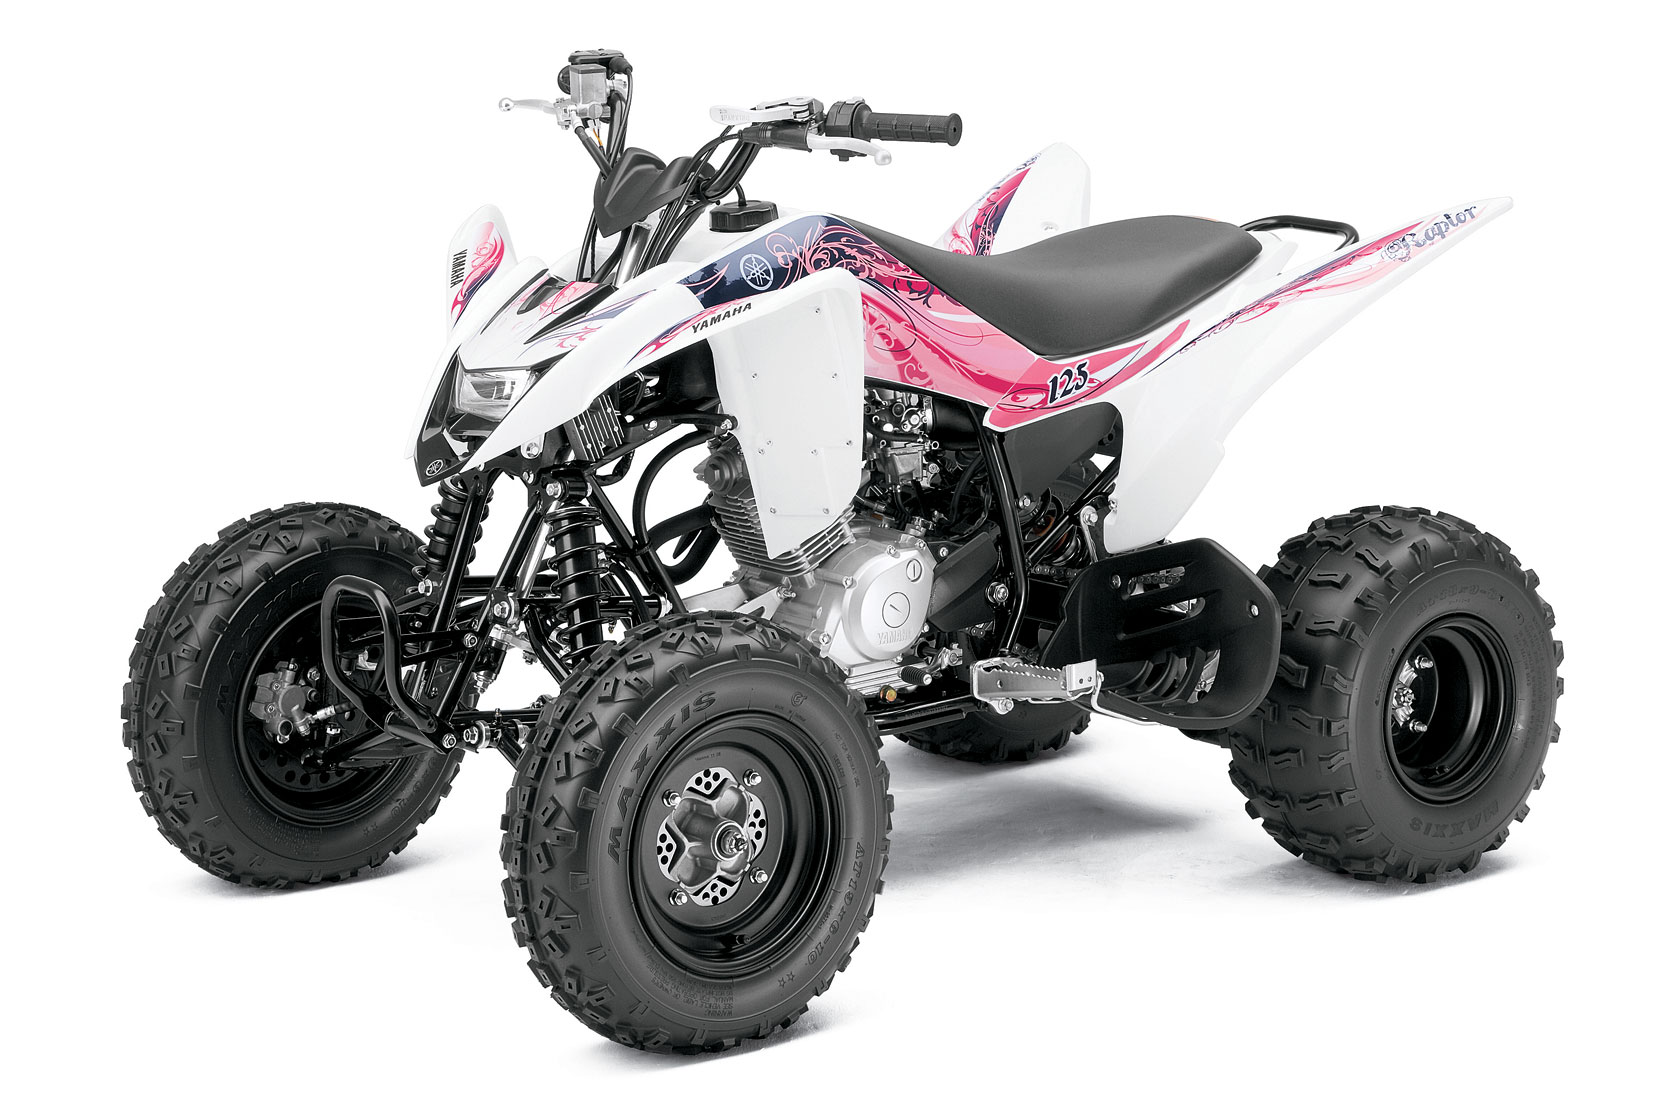 2011 yamaha raptor 125 review top speed for Atv yamaha raptor 125cc